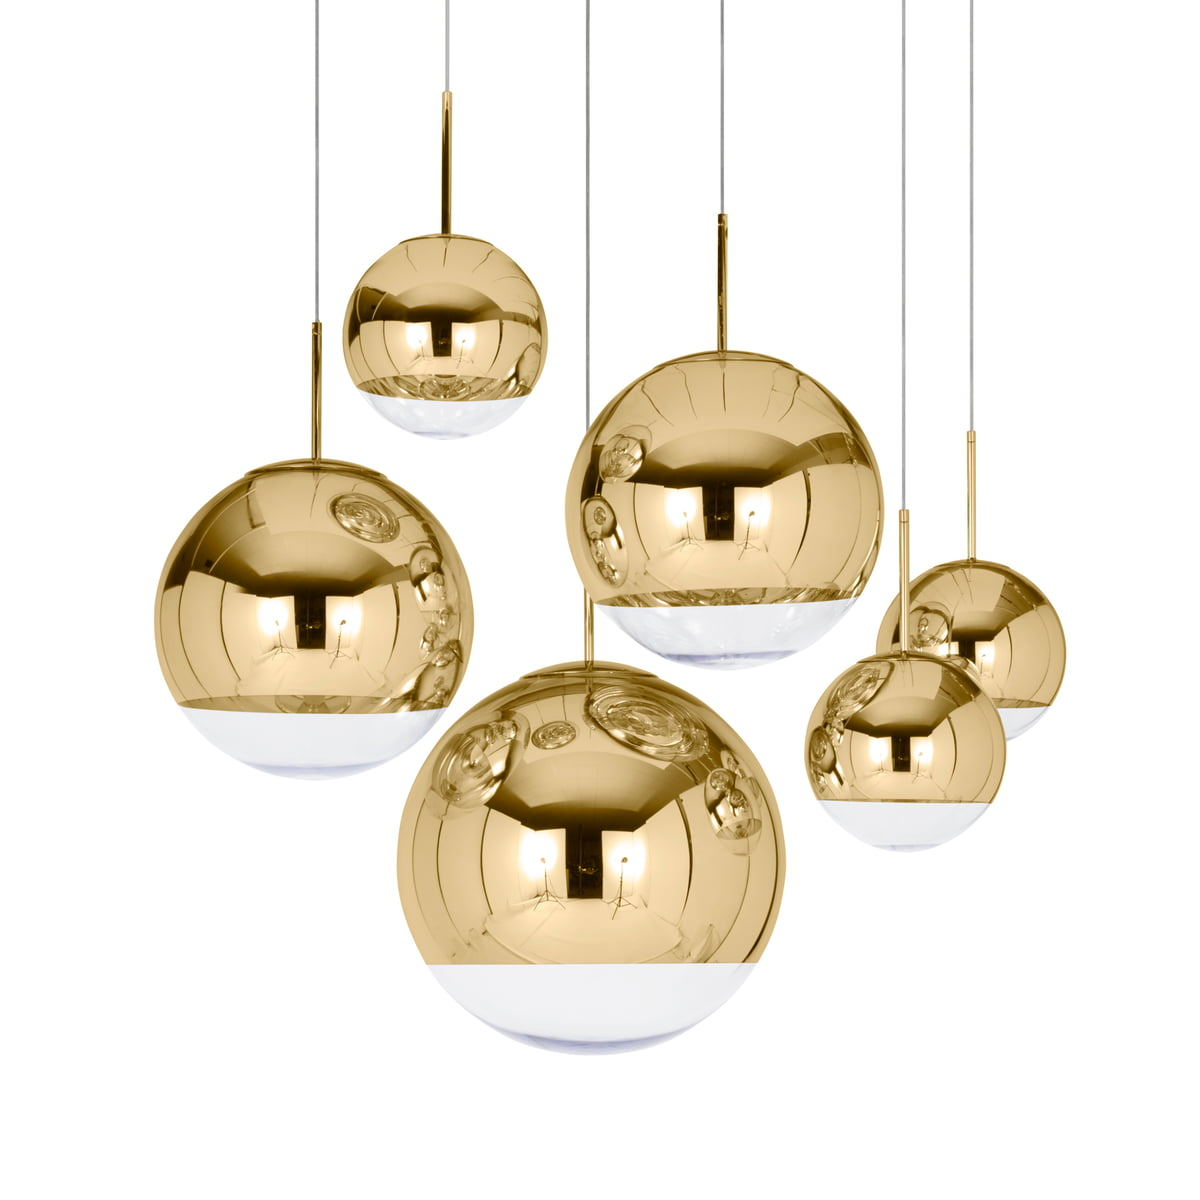 mirror ball gold pendelleuchte von tom dixon. Black Bedroom Furniture Sets. Home Design Ideas